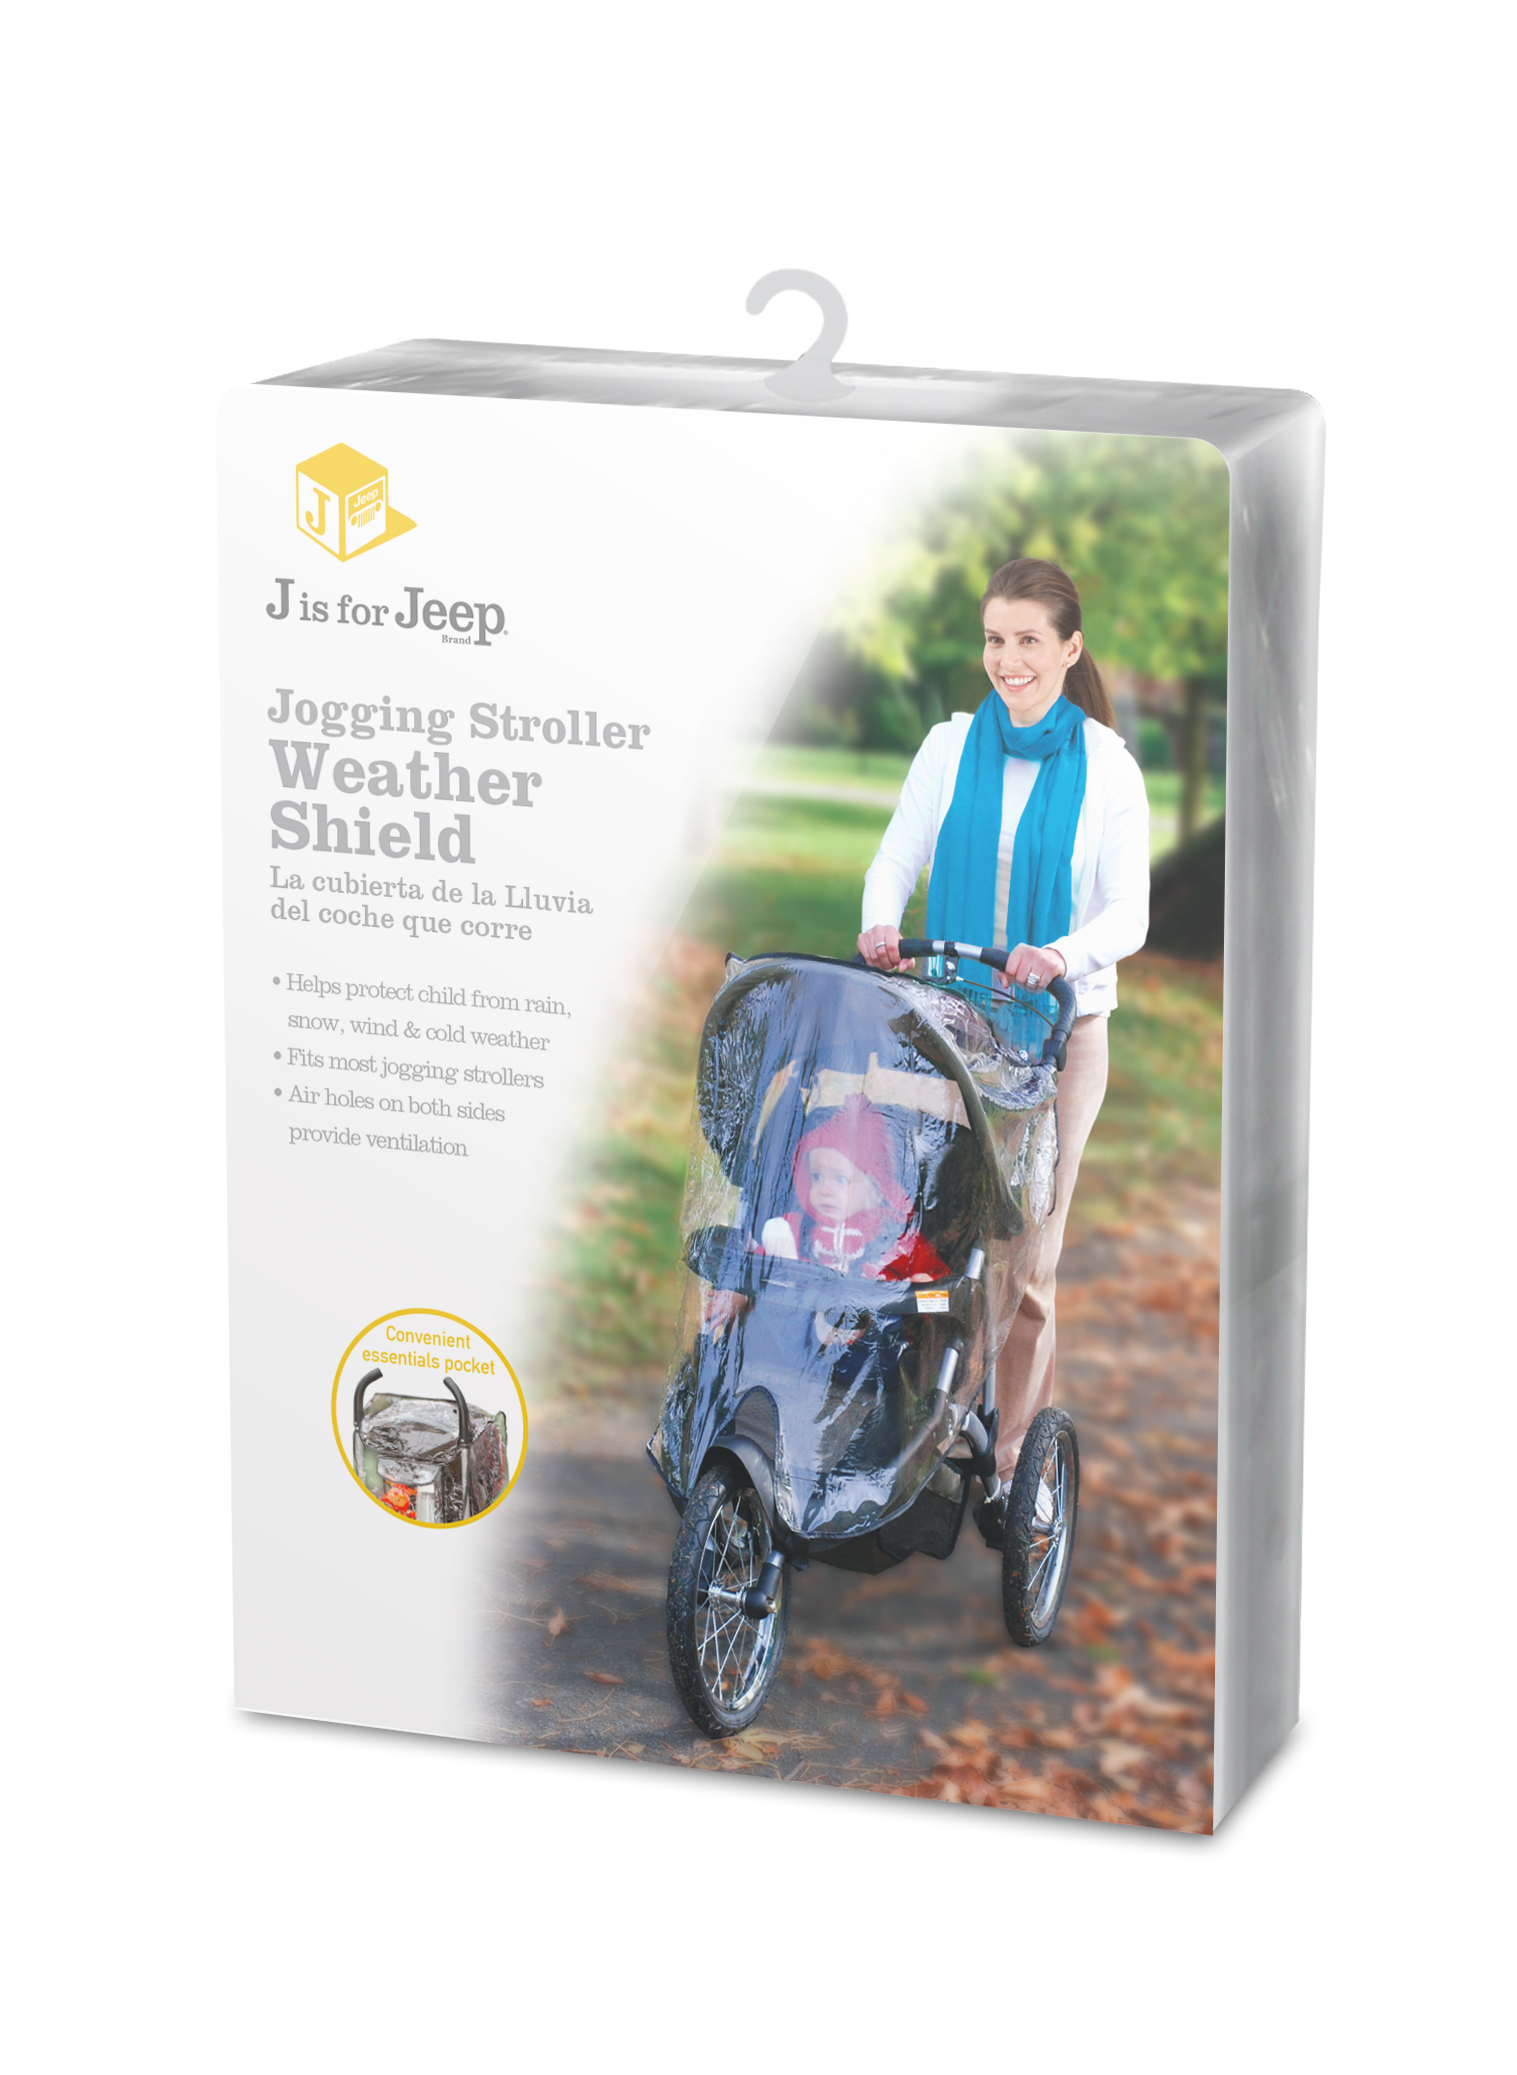 Jogging Stroller Weather Shield His Juveniles Inc